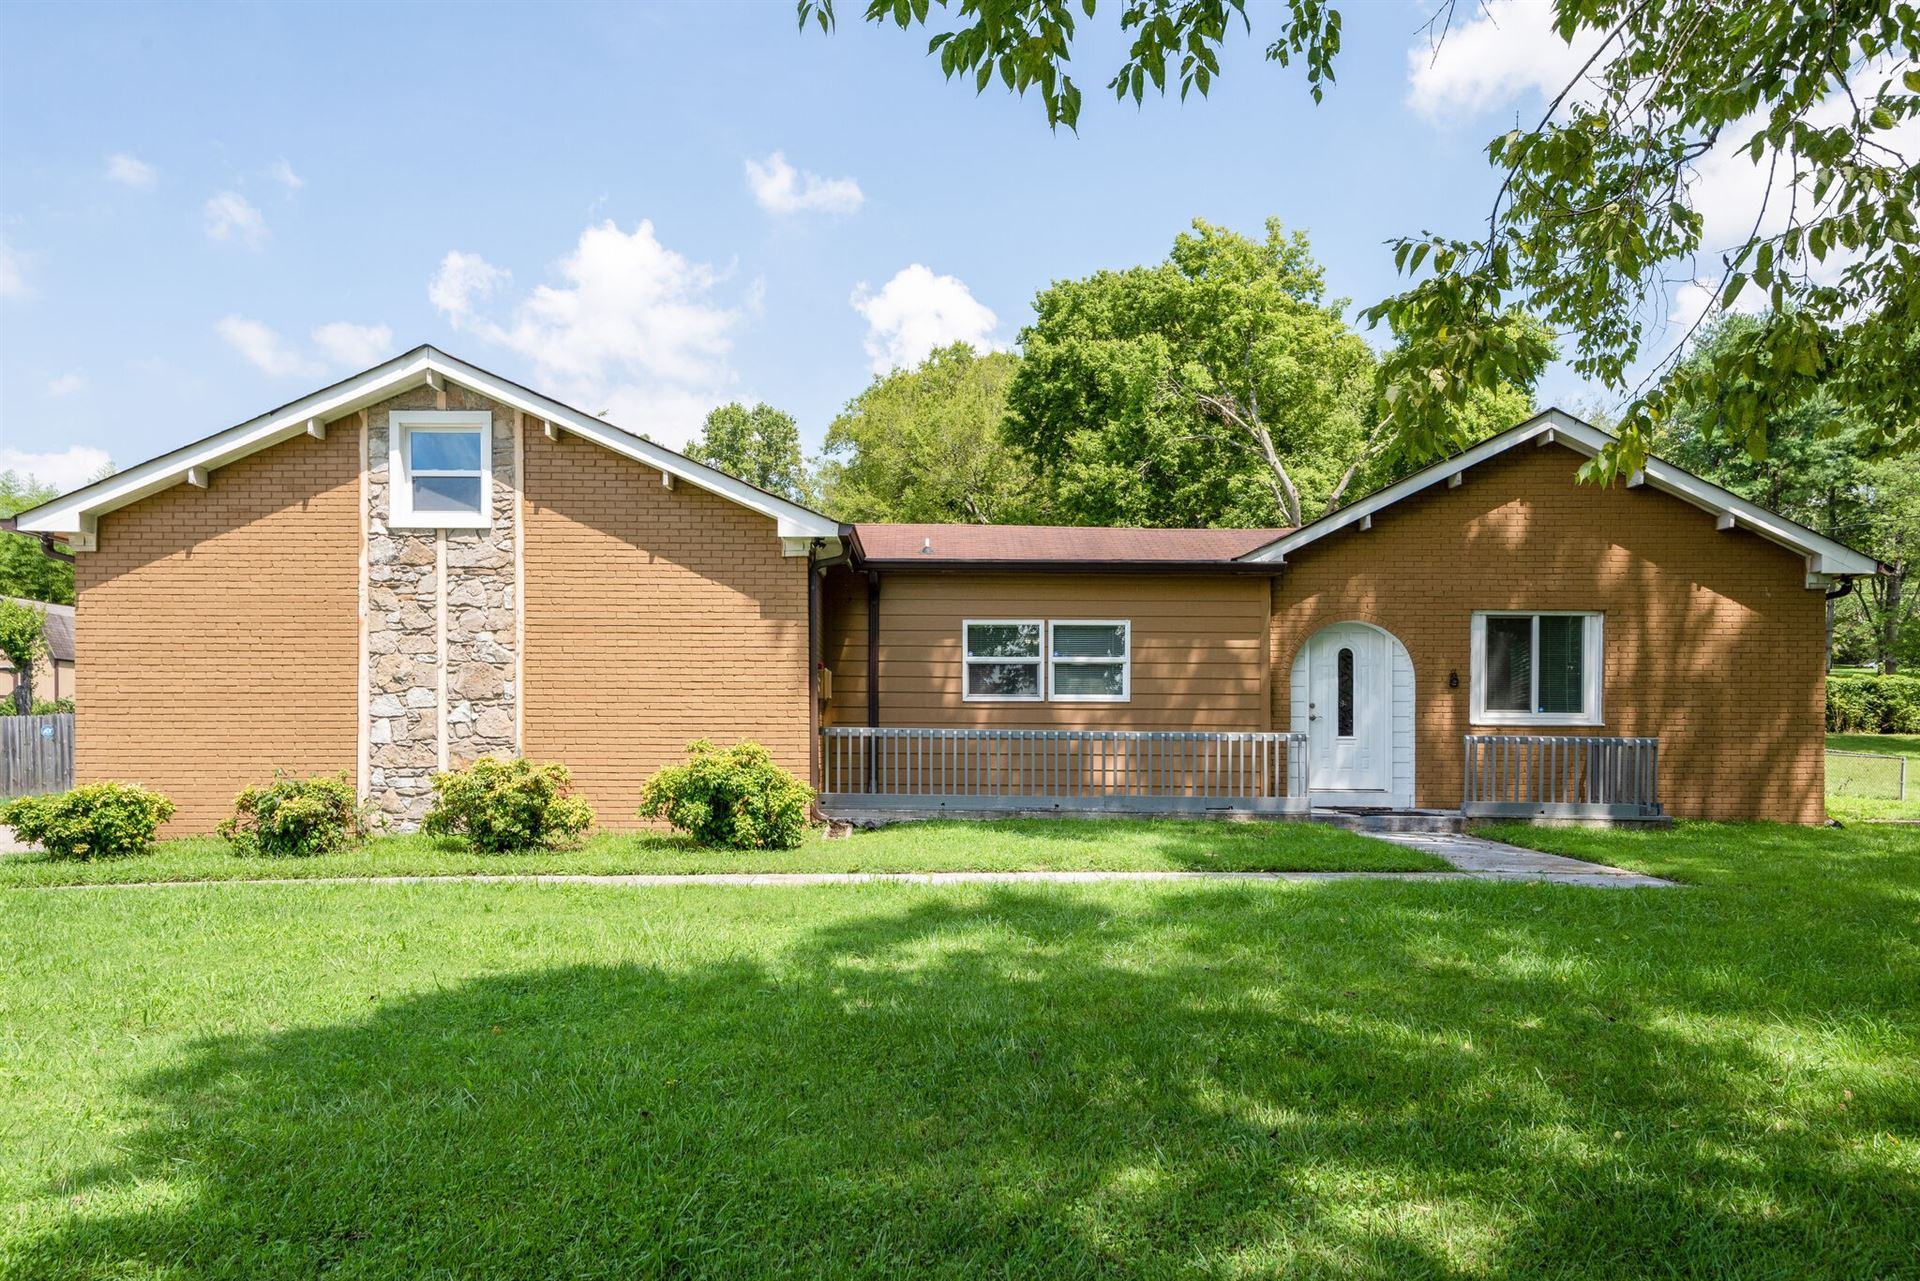 Photo of 8112 Moores Ln, Brentwood, TN 37027 (MLS # 2285850)